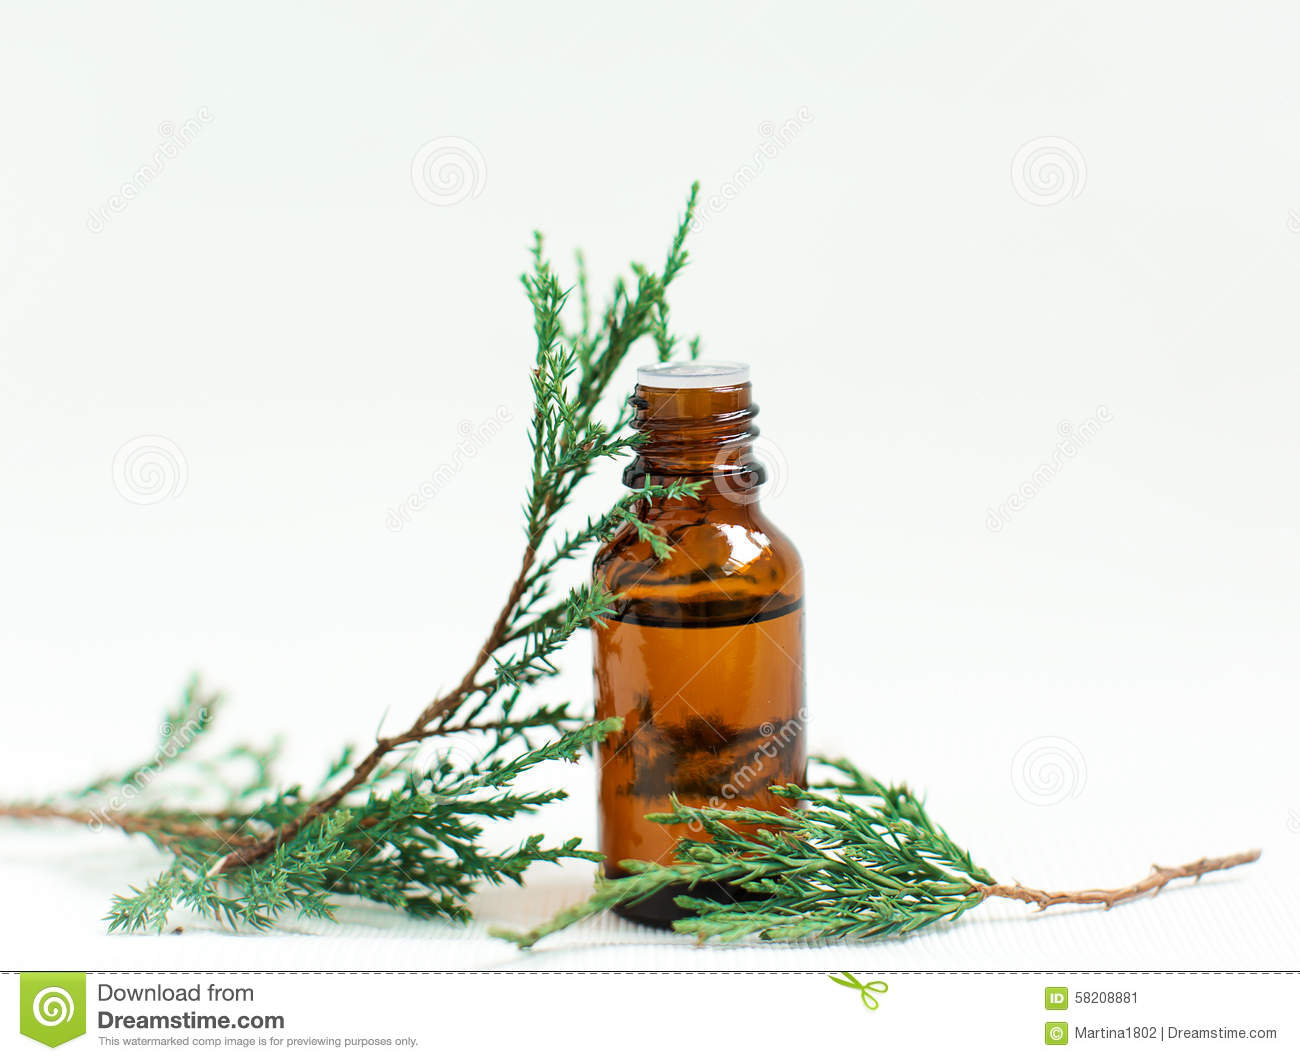 how to make pine oil